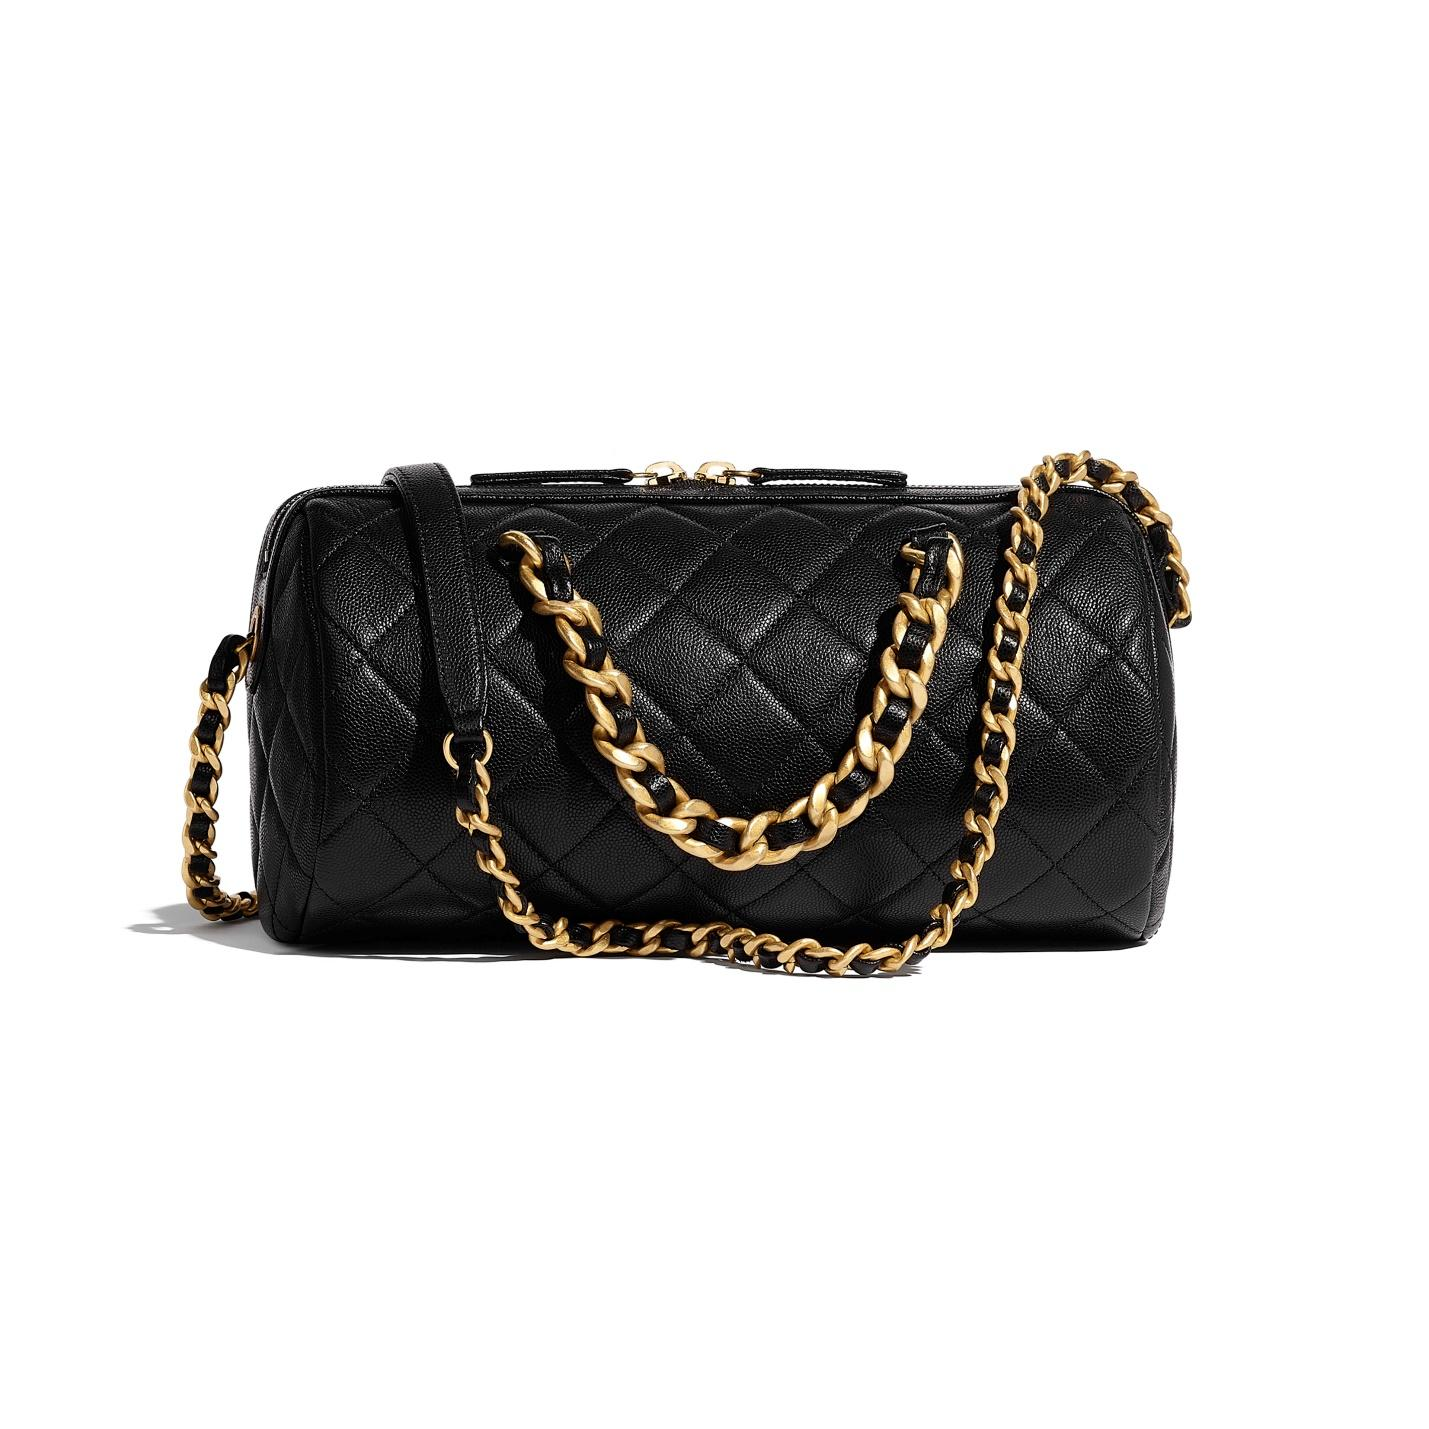 Grained Calfskin & Gold-Tone Metal Black Bowling Bag | CHANEL